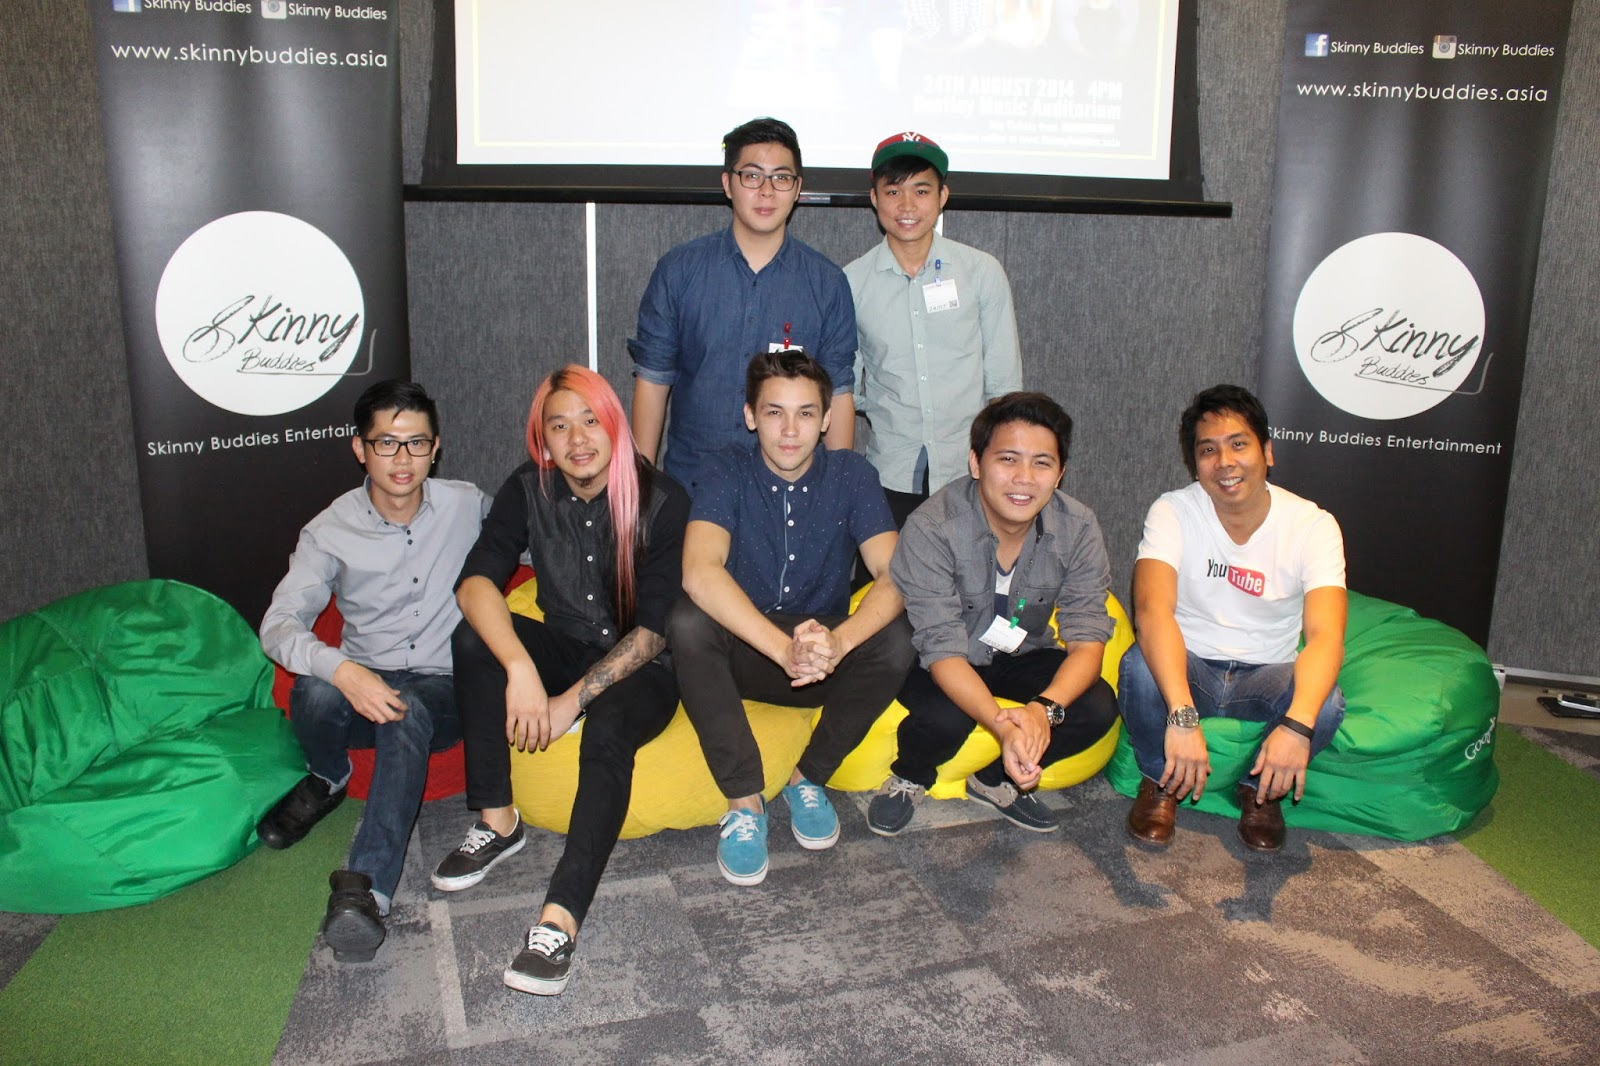 The panel photo shows (Bottom Row L-R) Leonard Chua (Skinny Buddies Entertainment), Darren Teh (An Honest Mistake), Mark O'dea (Host), Ming Han (Skyward), Zeffri Yusof (Google Malaysia). (Back Row) Skyward band members.